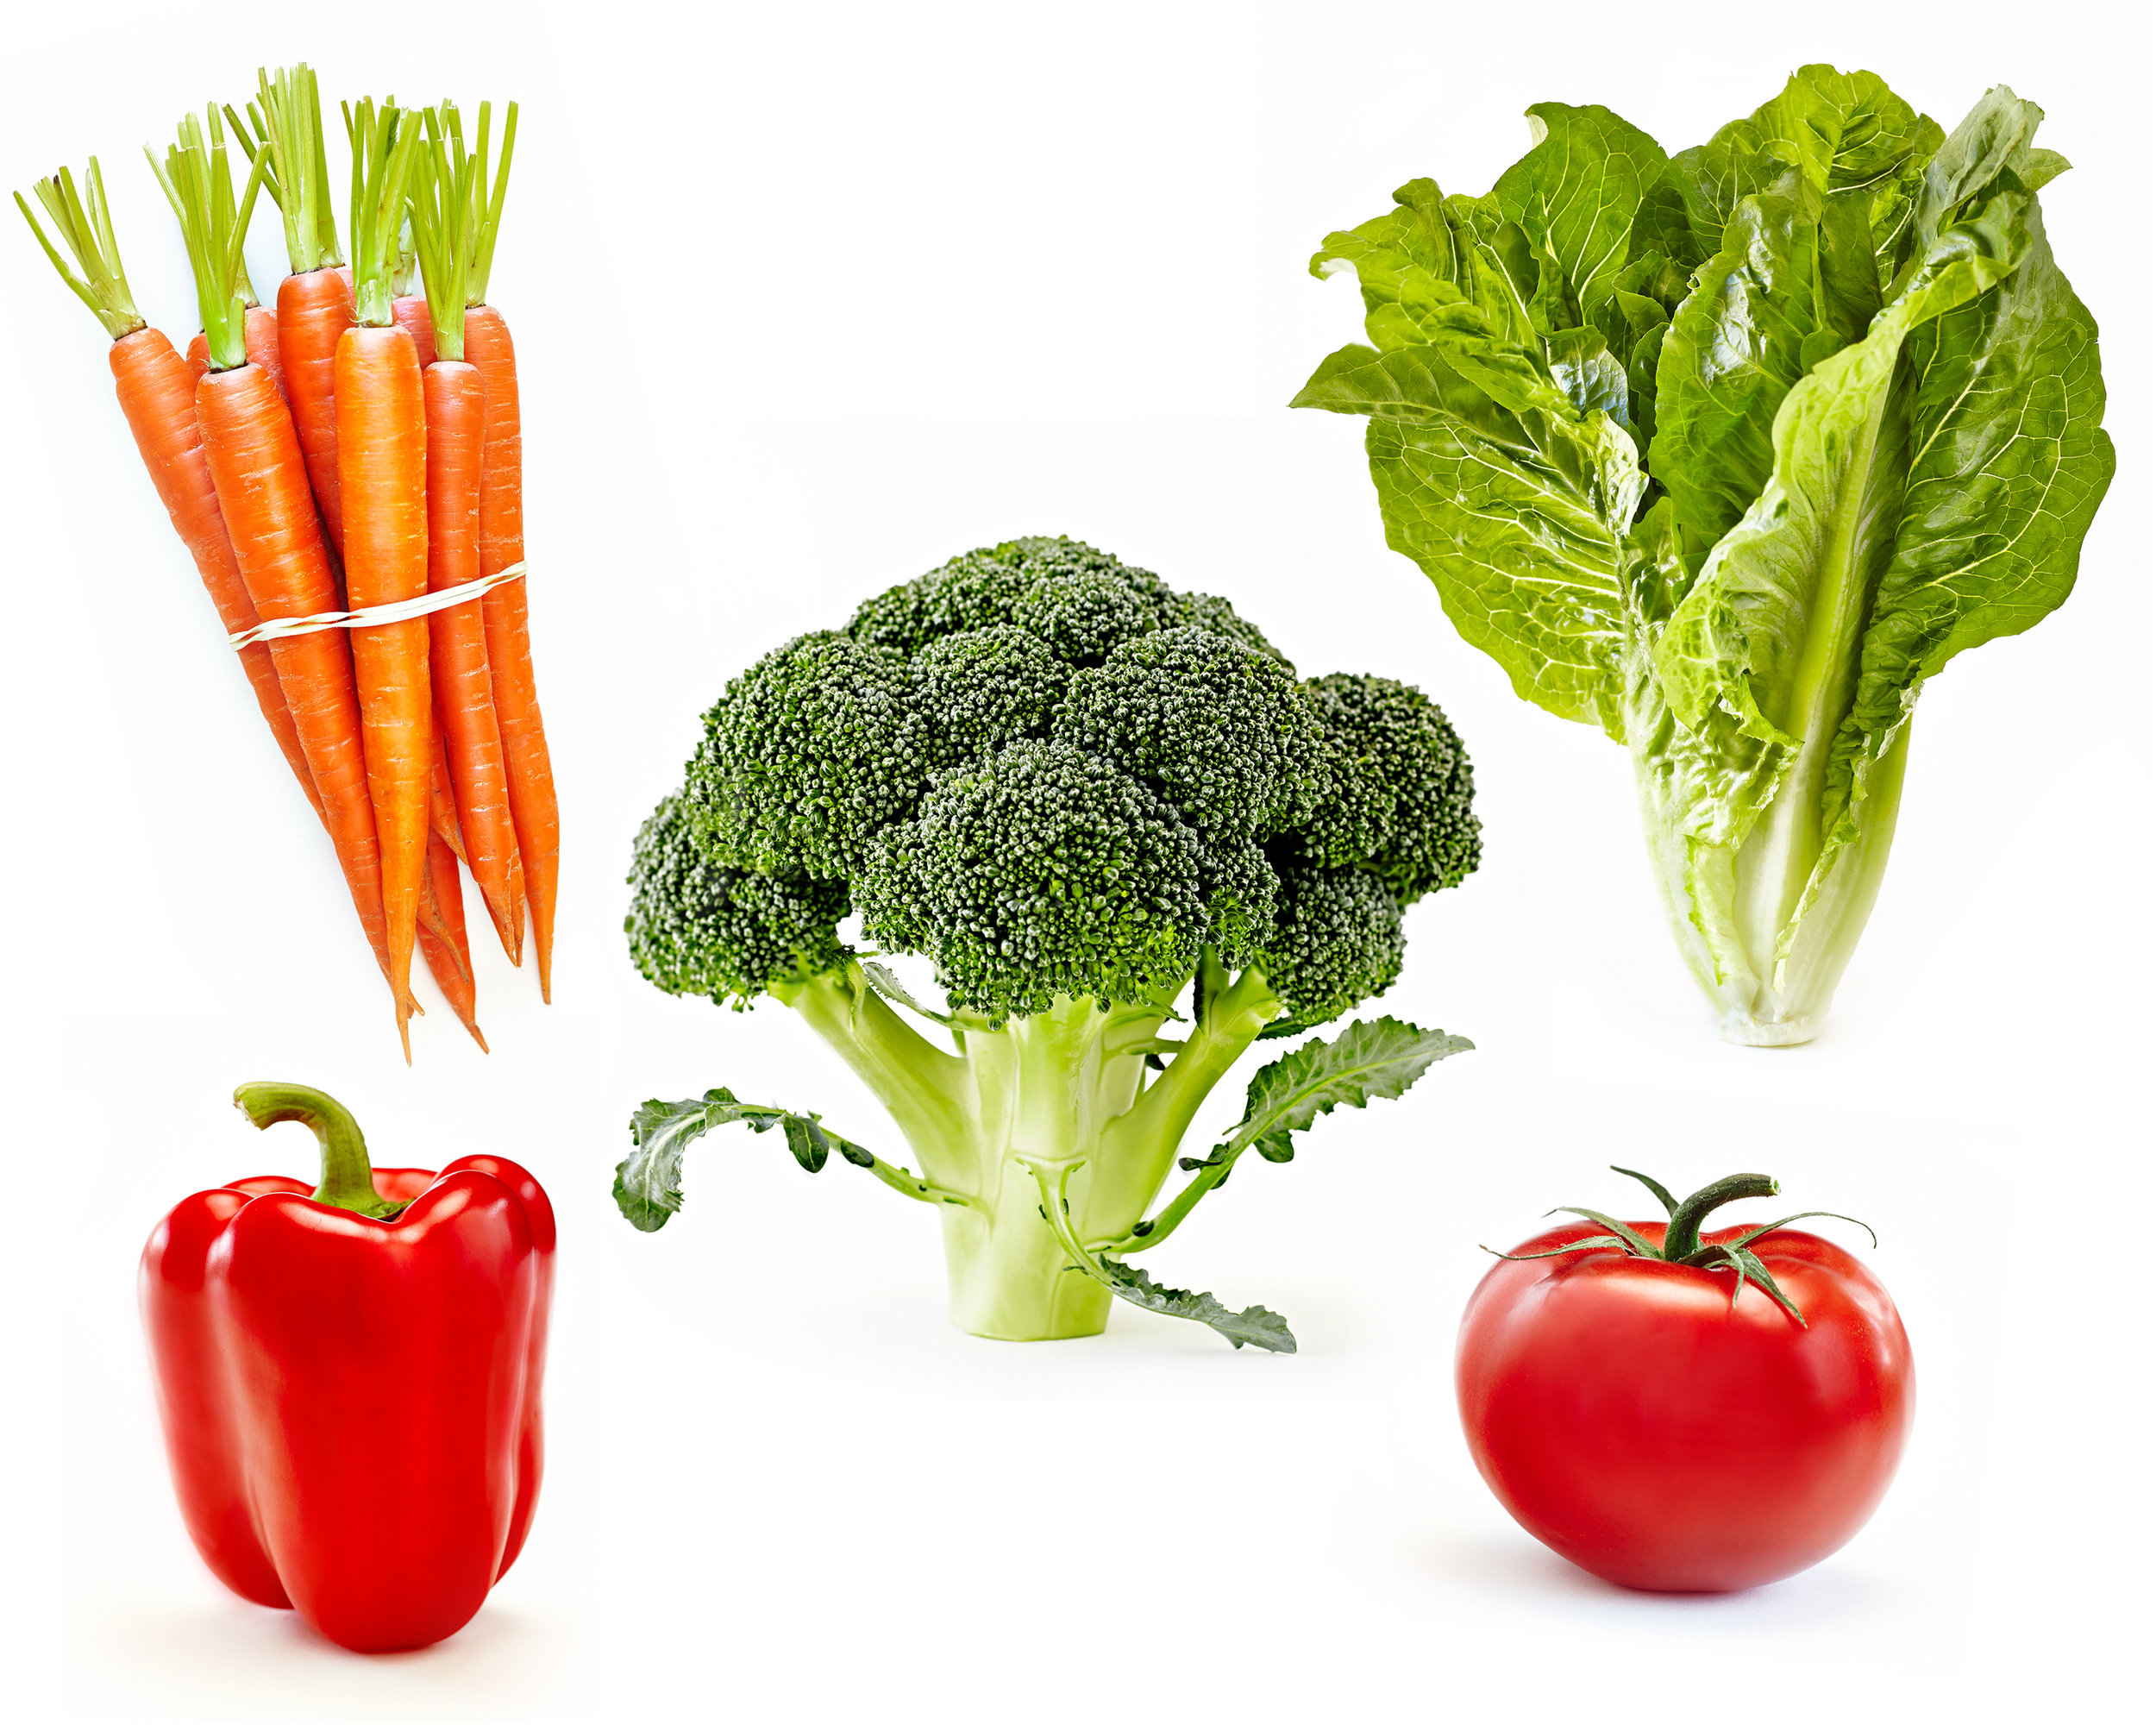 Beautiful fresh vegetables on white carrots, bell pepper, tomatoes, romaine lettuce, and broccoli